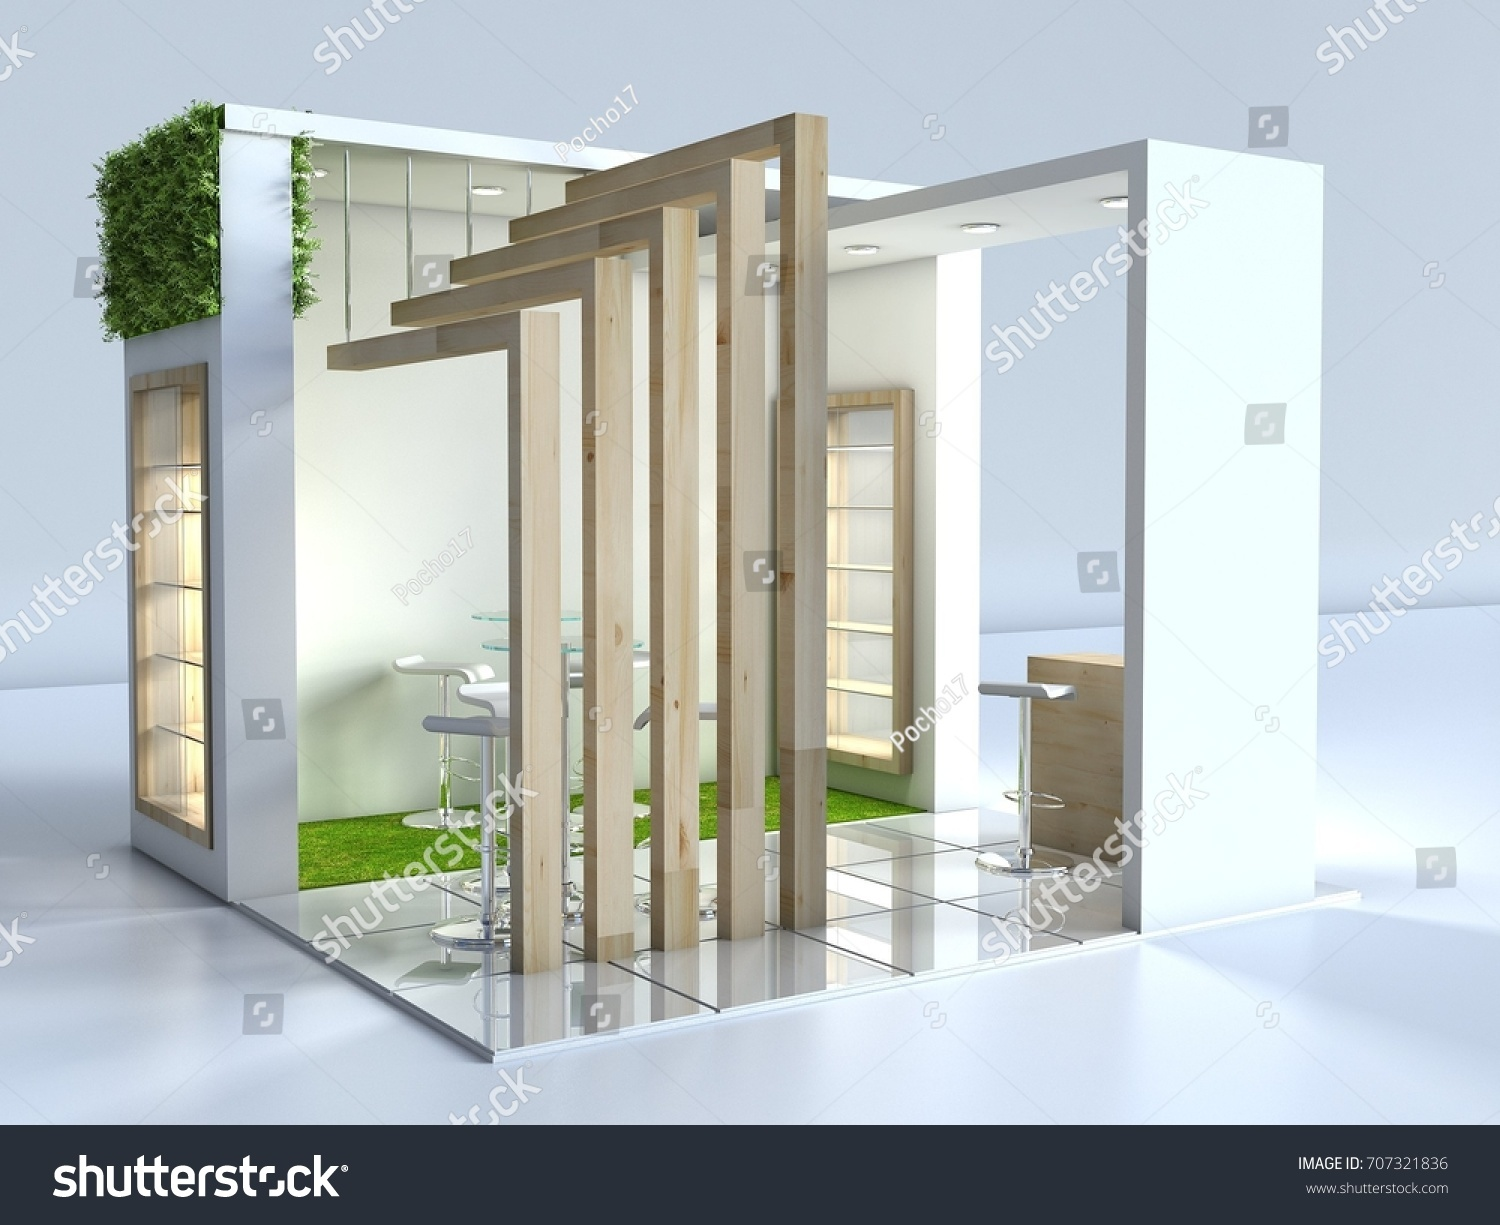 D Exhibition Design : Stand d exhibition design wood grass stock illustration